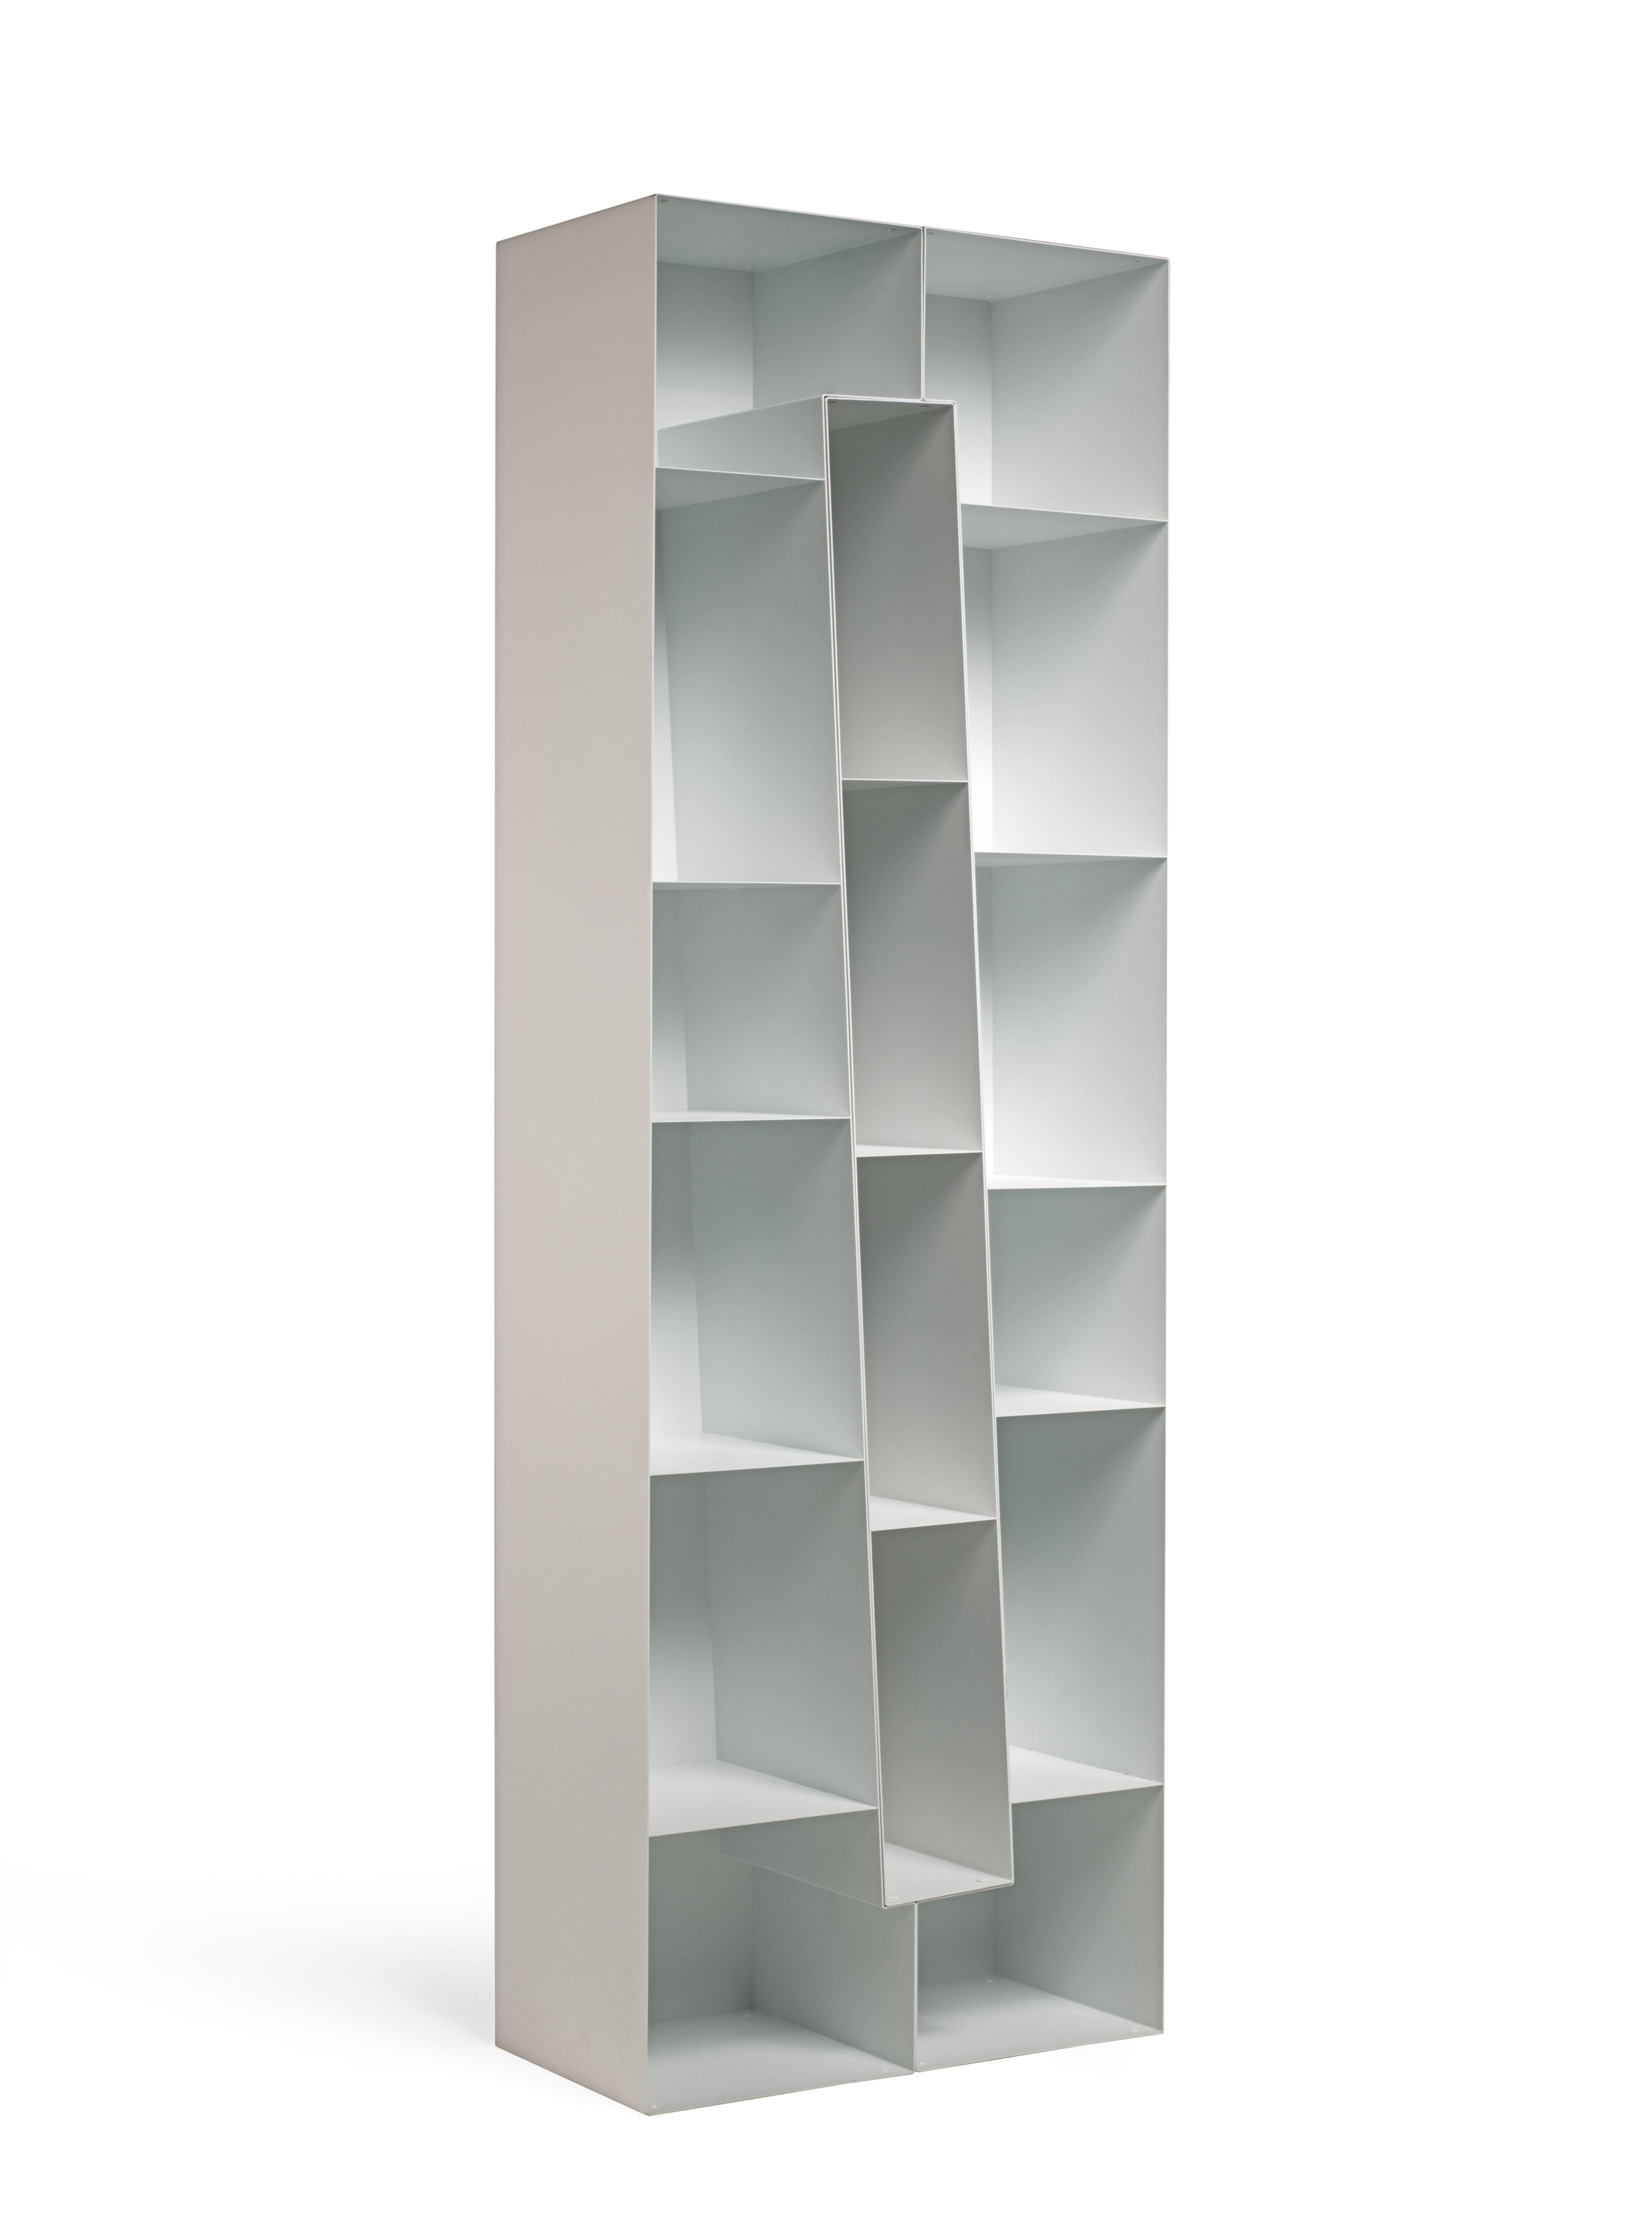 Bibliotheque 70 Cm Squilibri Evolution Bookcase Bookcase 1 Long Oblique Element With Open Back By Skitsch